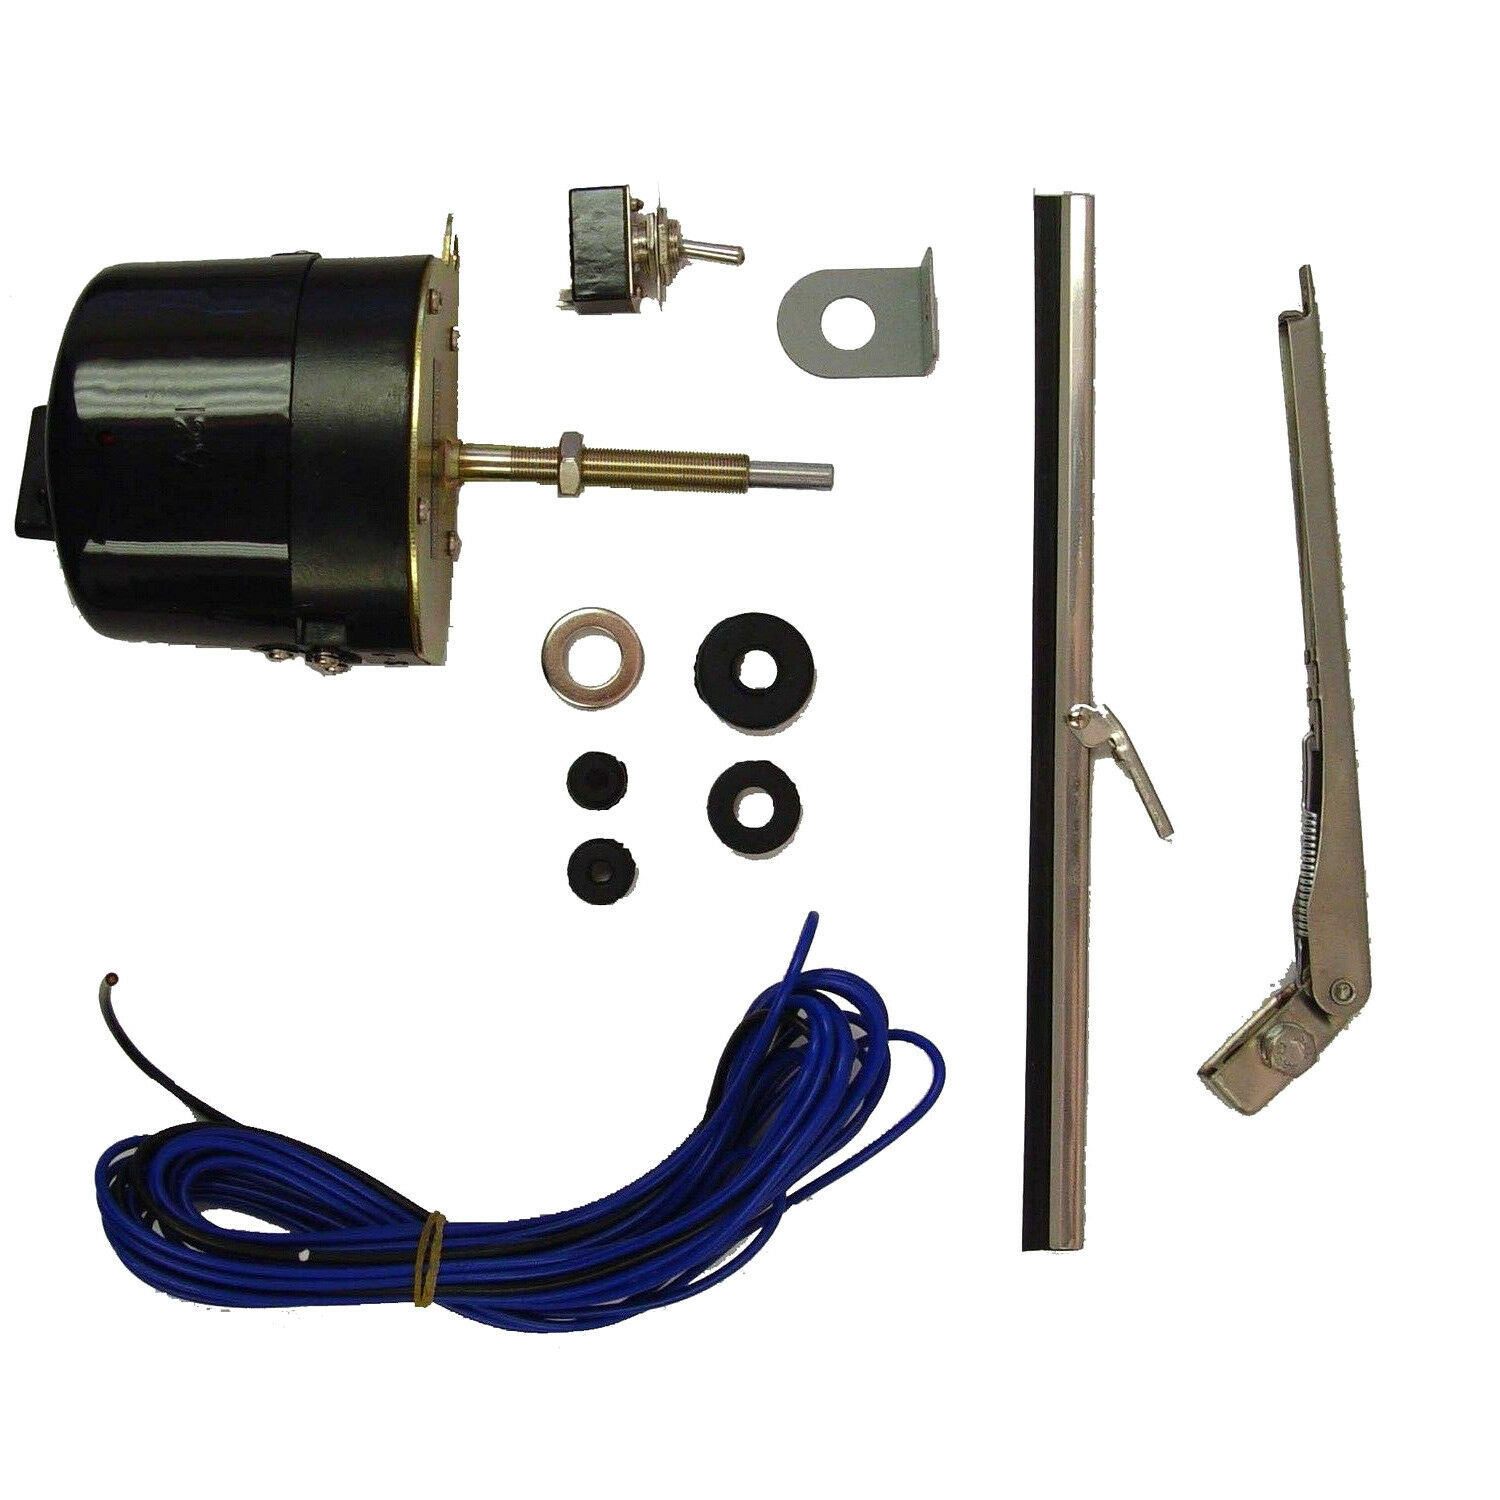 Wiper Motor Kit 12v For Jeep Willys Cj3b Cj5 Cj6 Universal